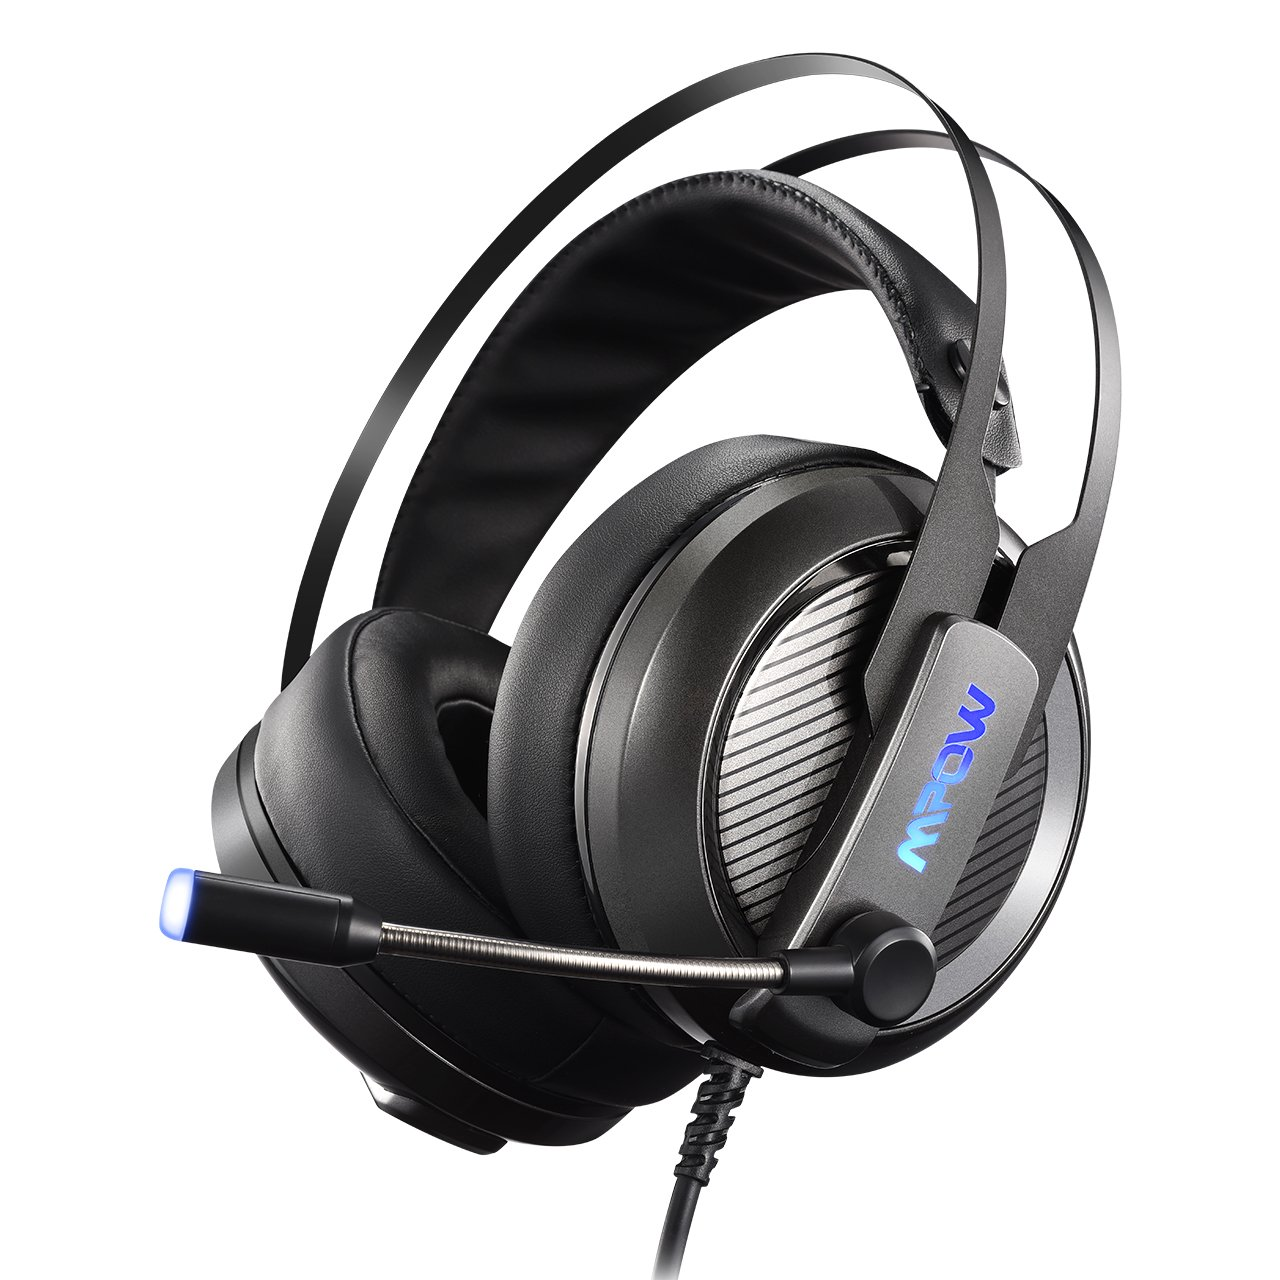 Mpow EG4 Gaming Headset for PC, Playstation 4, Virtual 7.1 Surround Sound Headset, Computer USB Headphone with Noise-Cancelling Microphone, LED Light Over-Ear Gaming Headphones